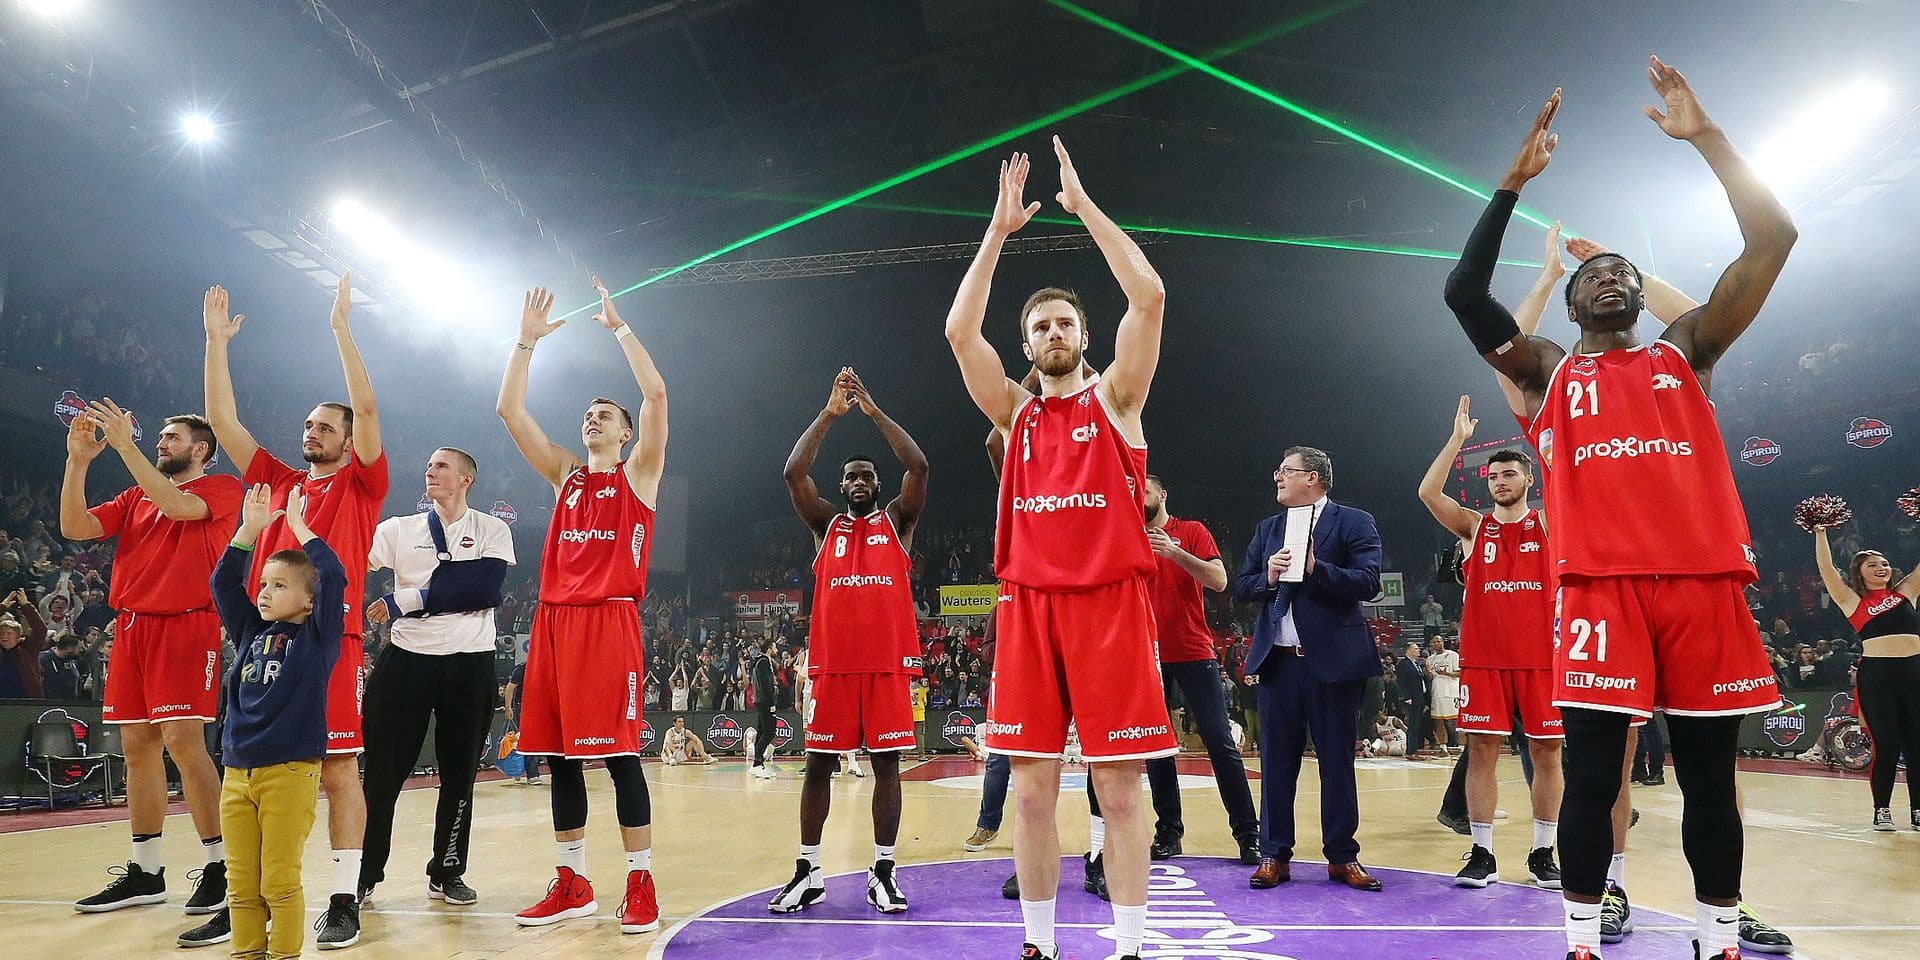 Charleroi's Alexandre Libert celebrates after winning the basketball match between Spirou Charleroi and Brussels, Friday 01 March 2019 in Charleroi, on day 18 of the 'EuroMillions League' Belgian first division basket competition. BELGA PHOTO VIRGINIE LEFOUR